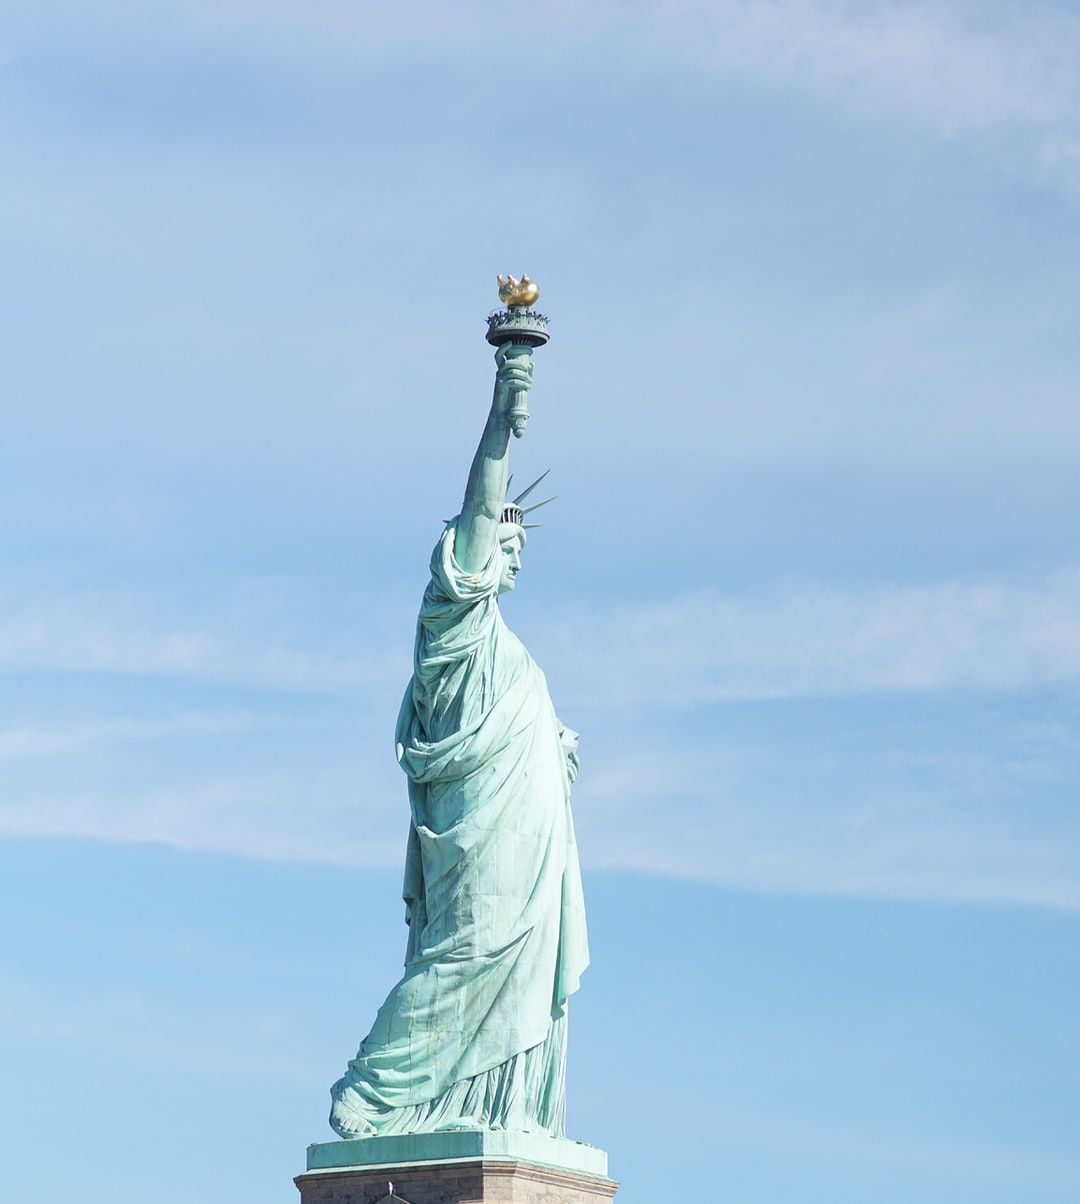 Statue of Liberty with clean blue skies behind the statue